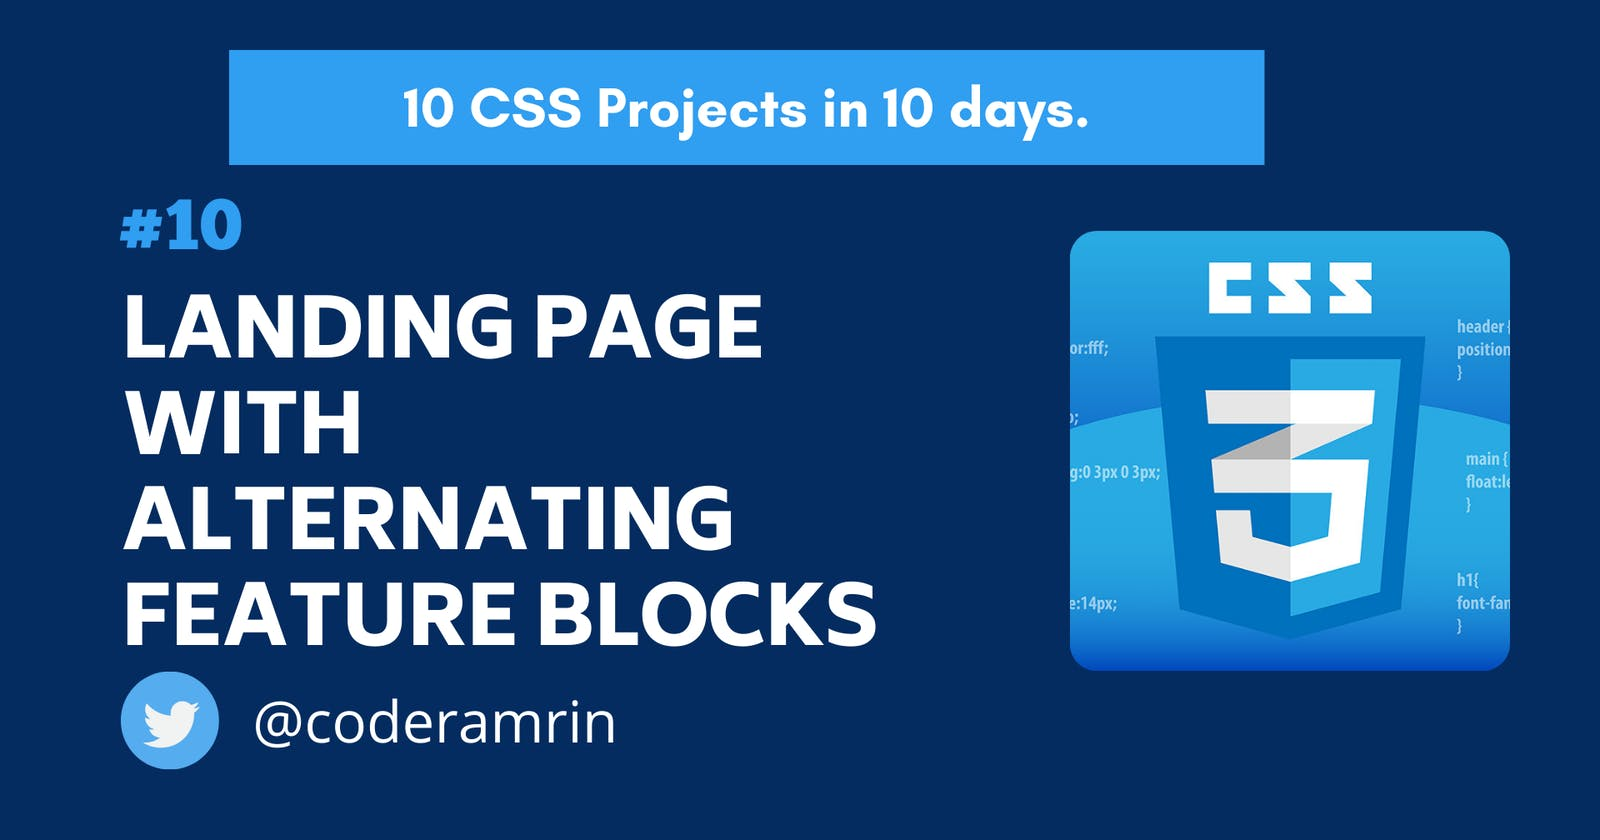 Build 10 CSS Projects in 10 days: Project 10